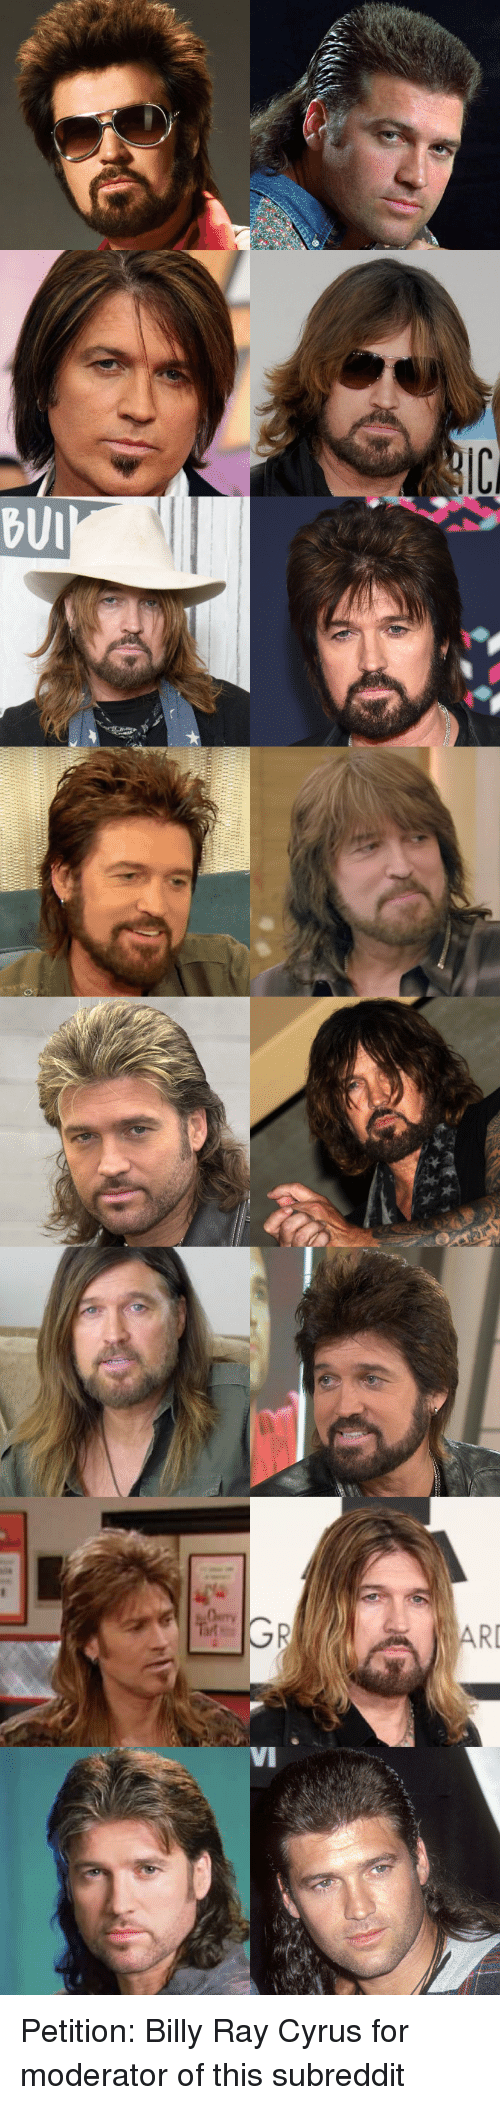 Haircuts, Billy Ray, and Billy Ray Cyrus: BUI  RI  VI Petition: Billy Ray Cyrus for moderator of this subreddit